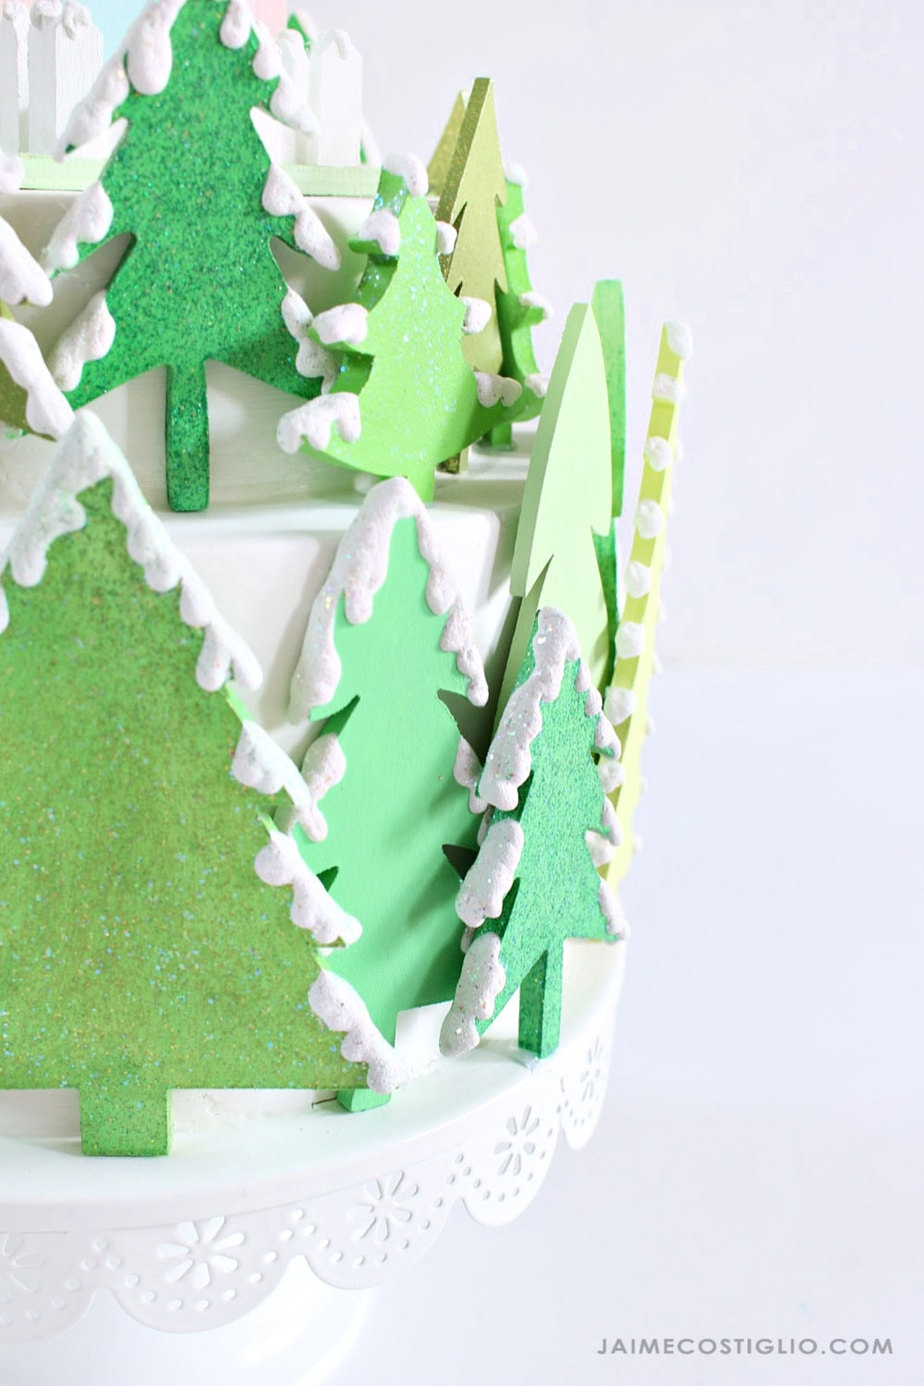 painted wood trees with snow and glitter